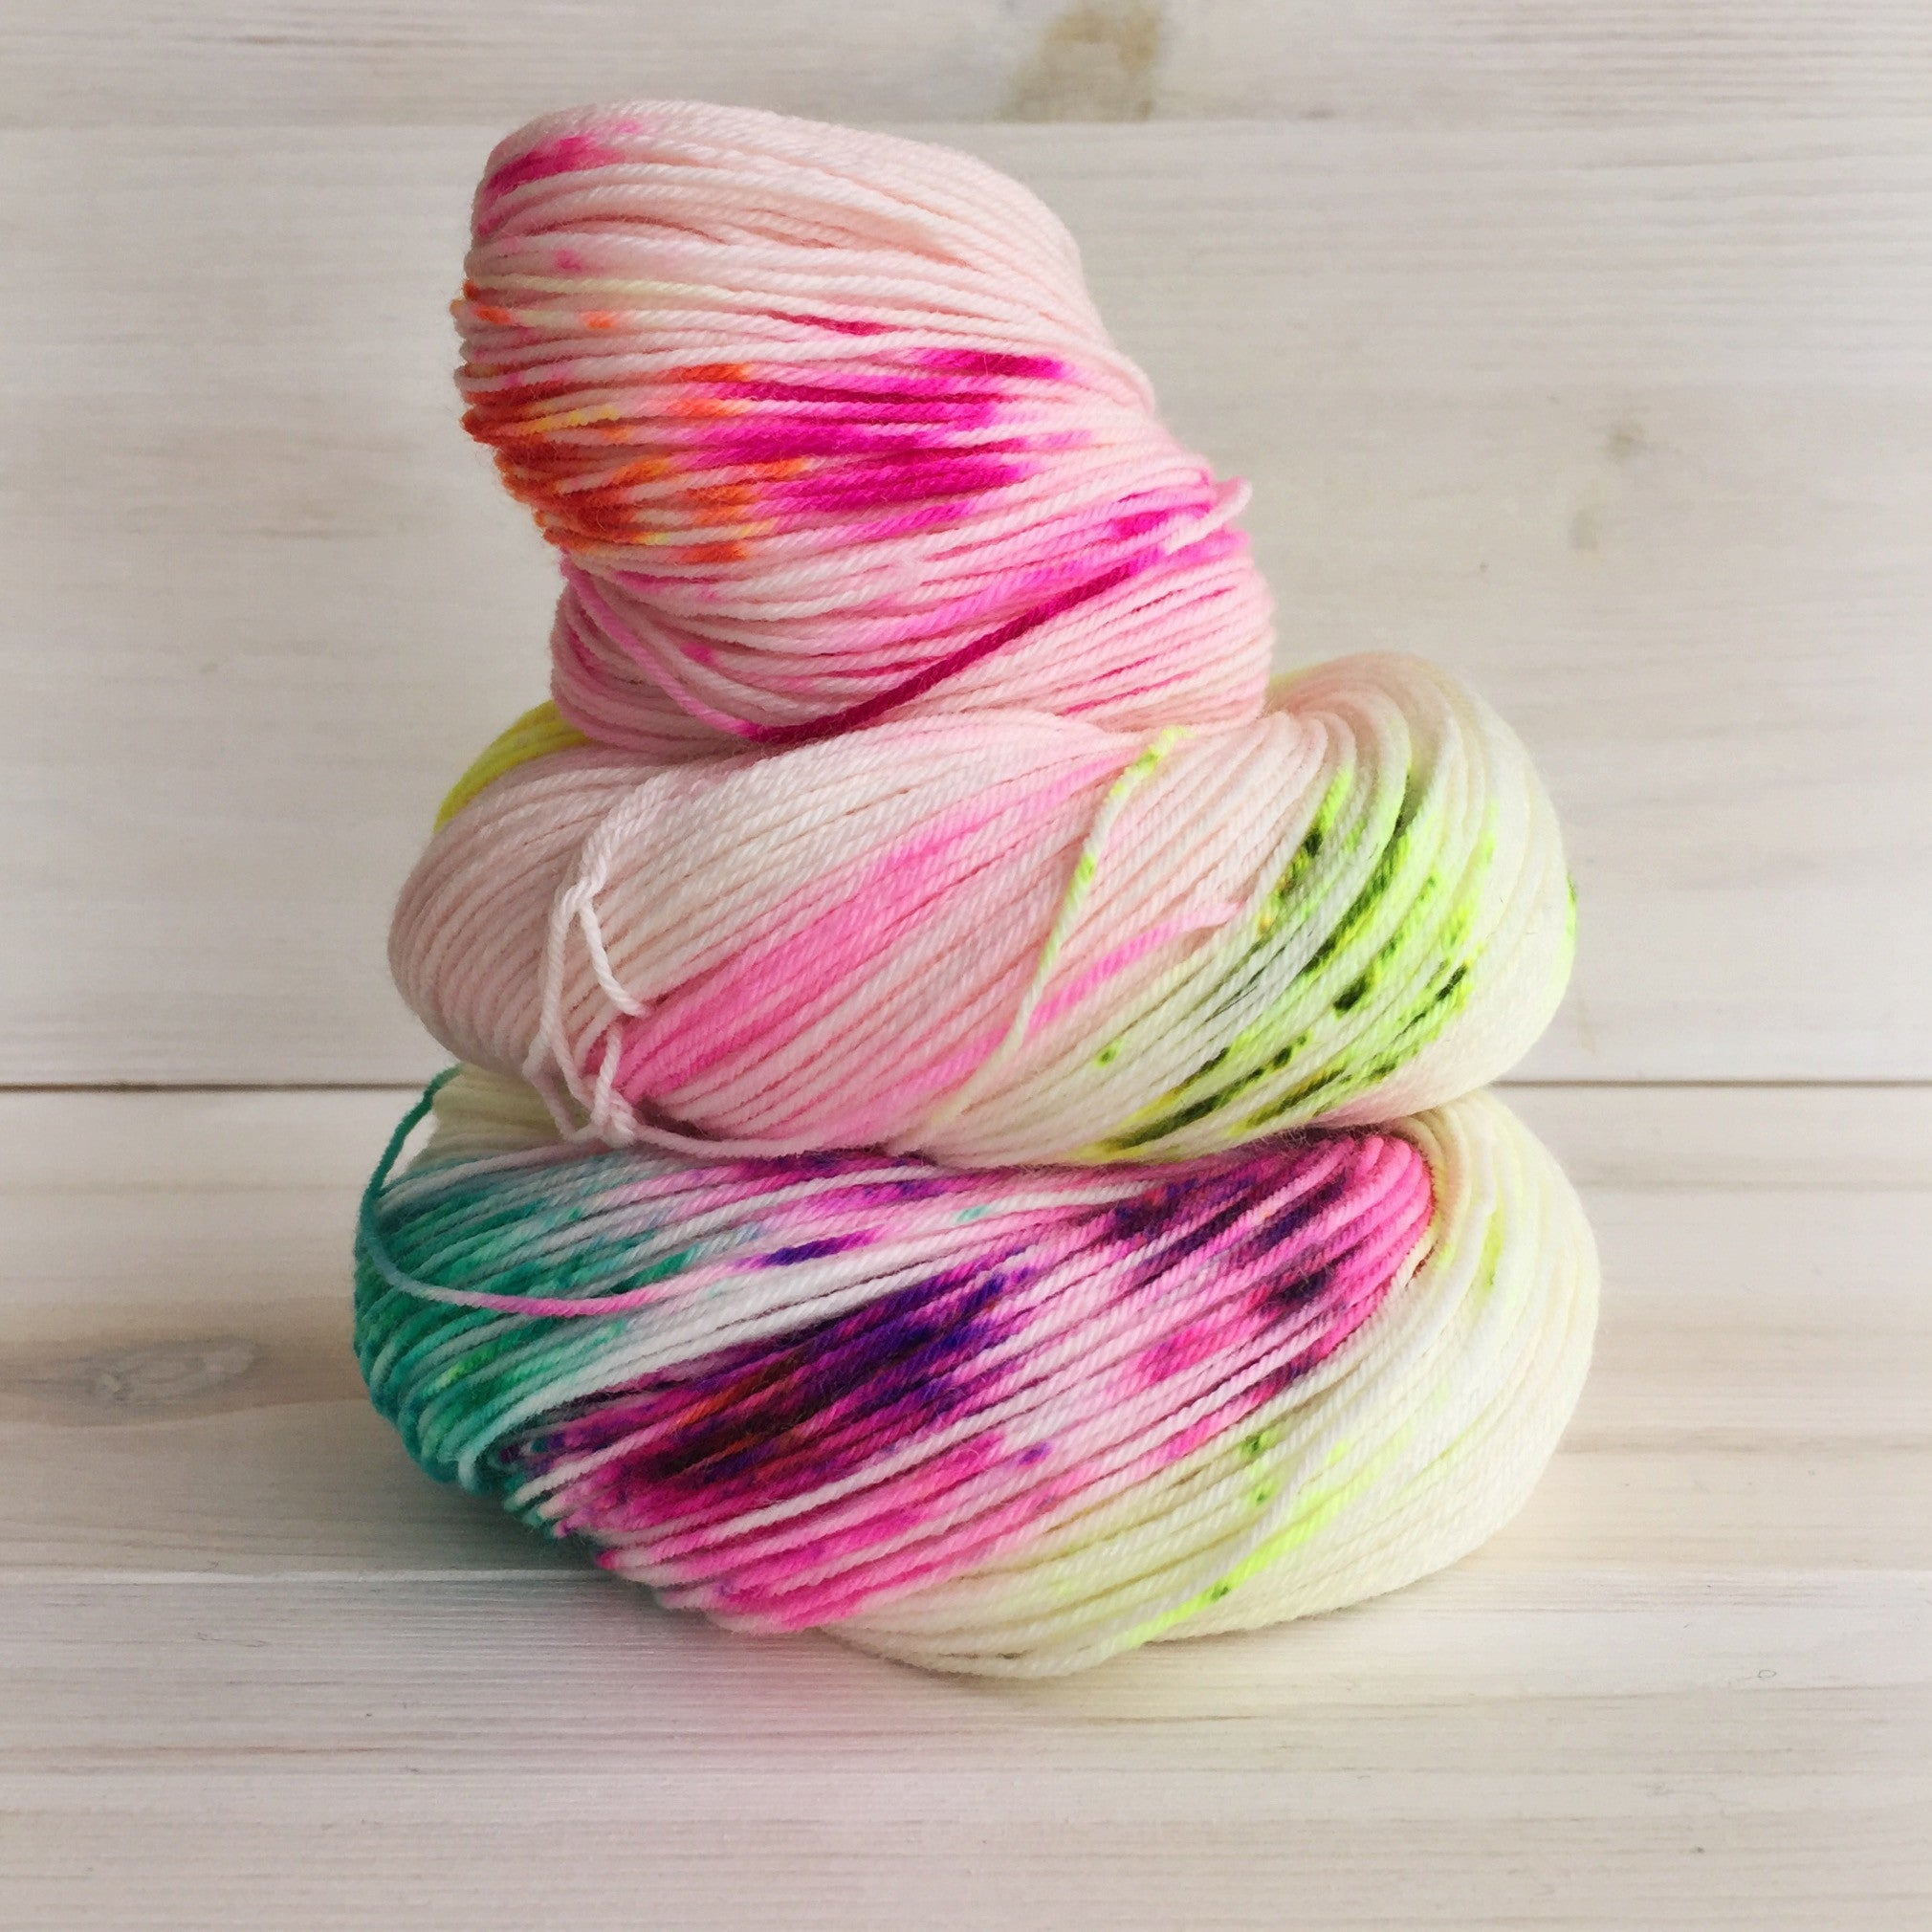 Hey Lady Hey Superwash Merino and Nylon Blend DK Yarn - Hey Cupcake